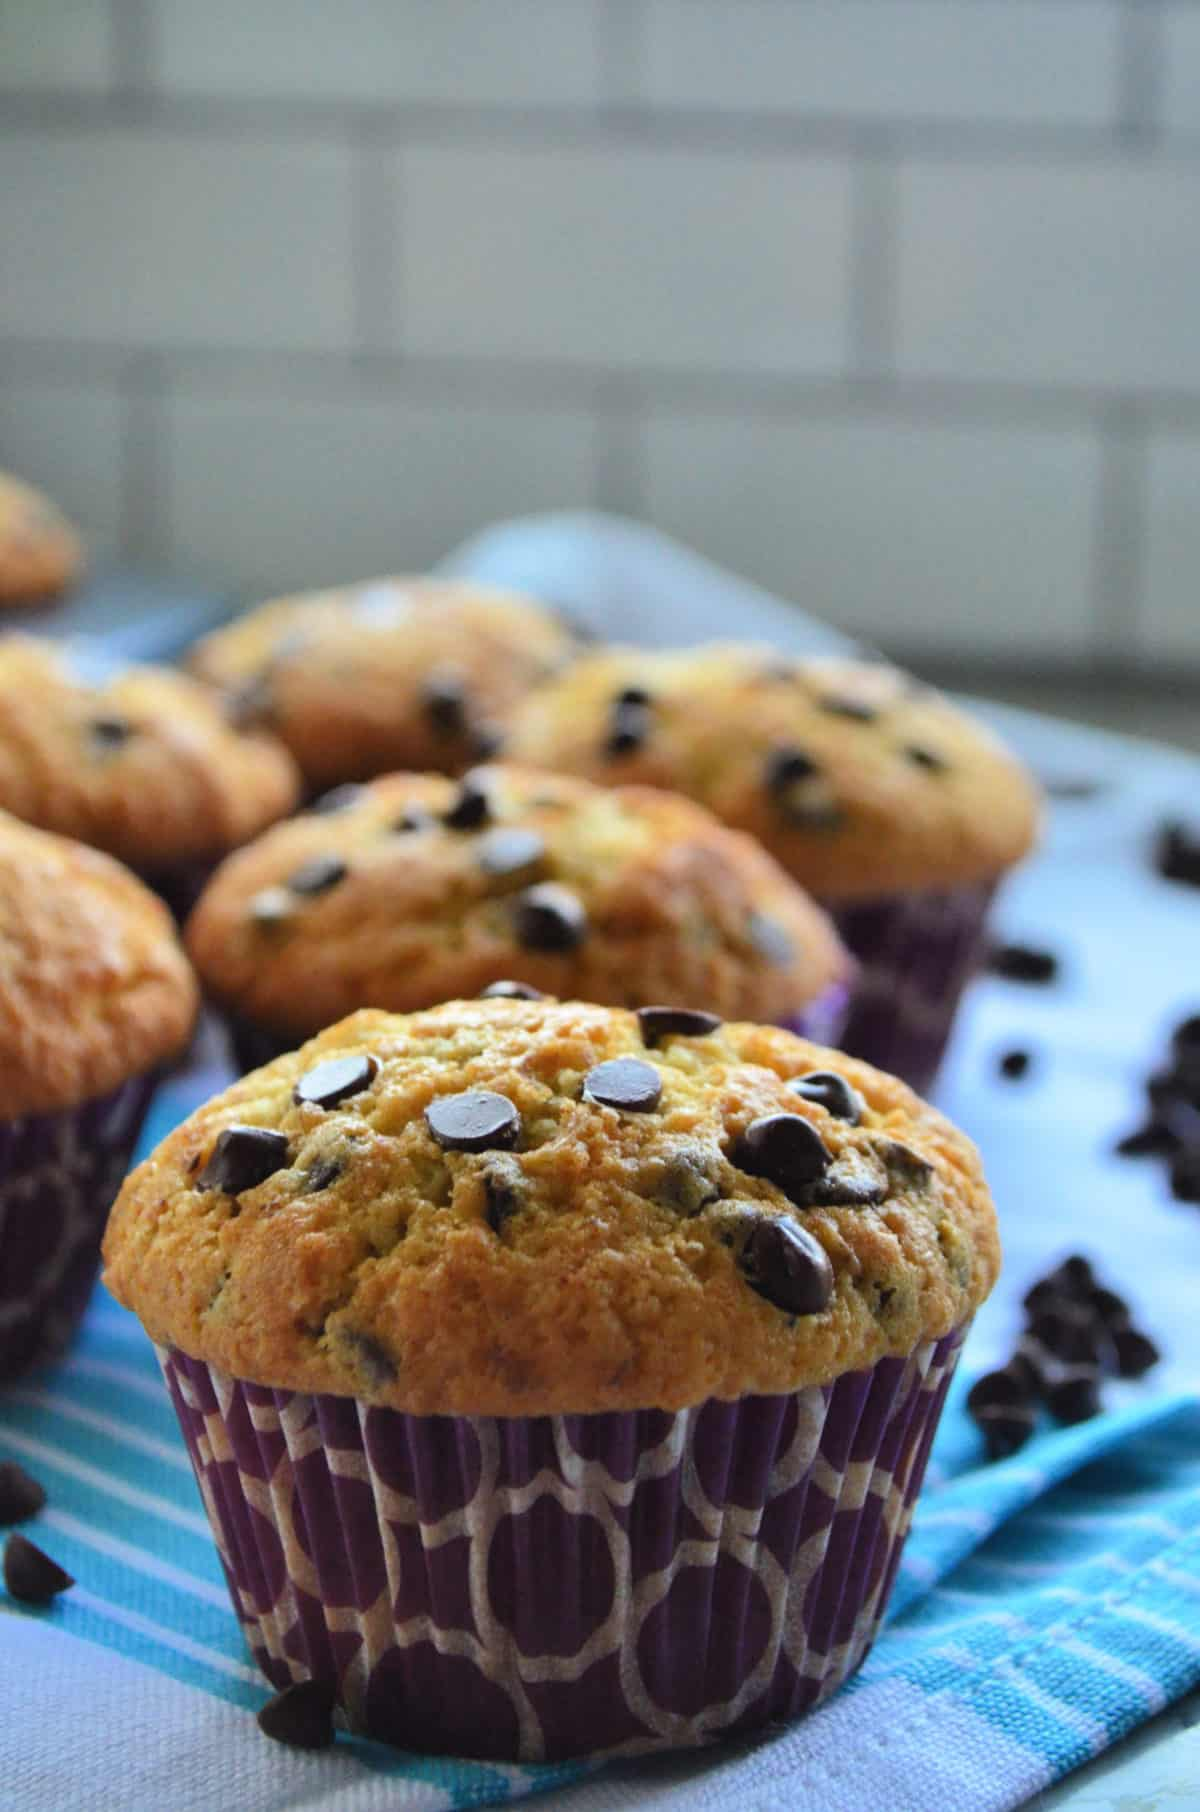 side view of chocolate chip muffin on blue cloth scattered with chocolate chips and muffins in background.